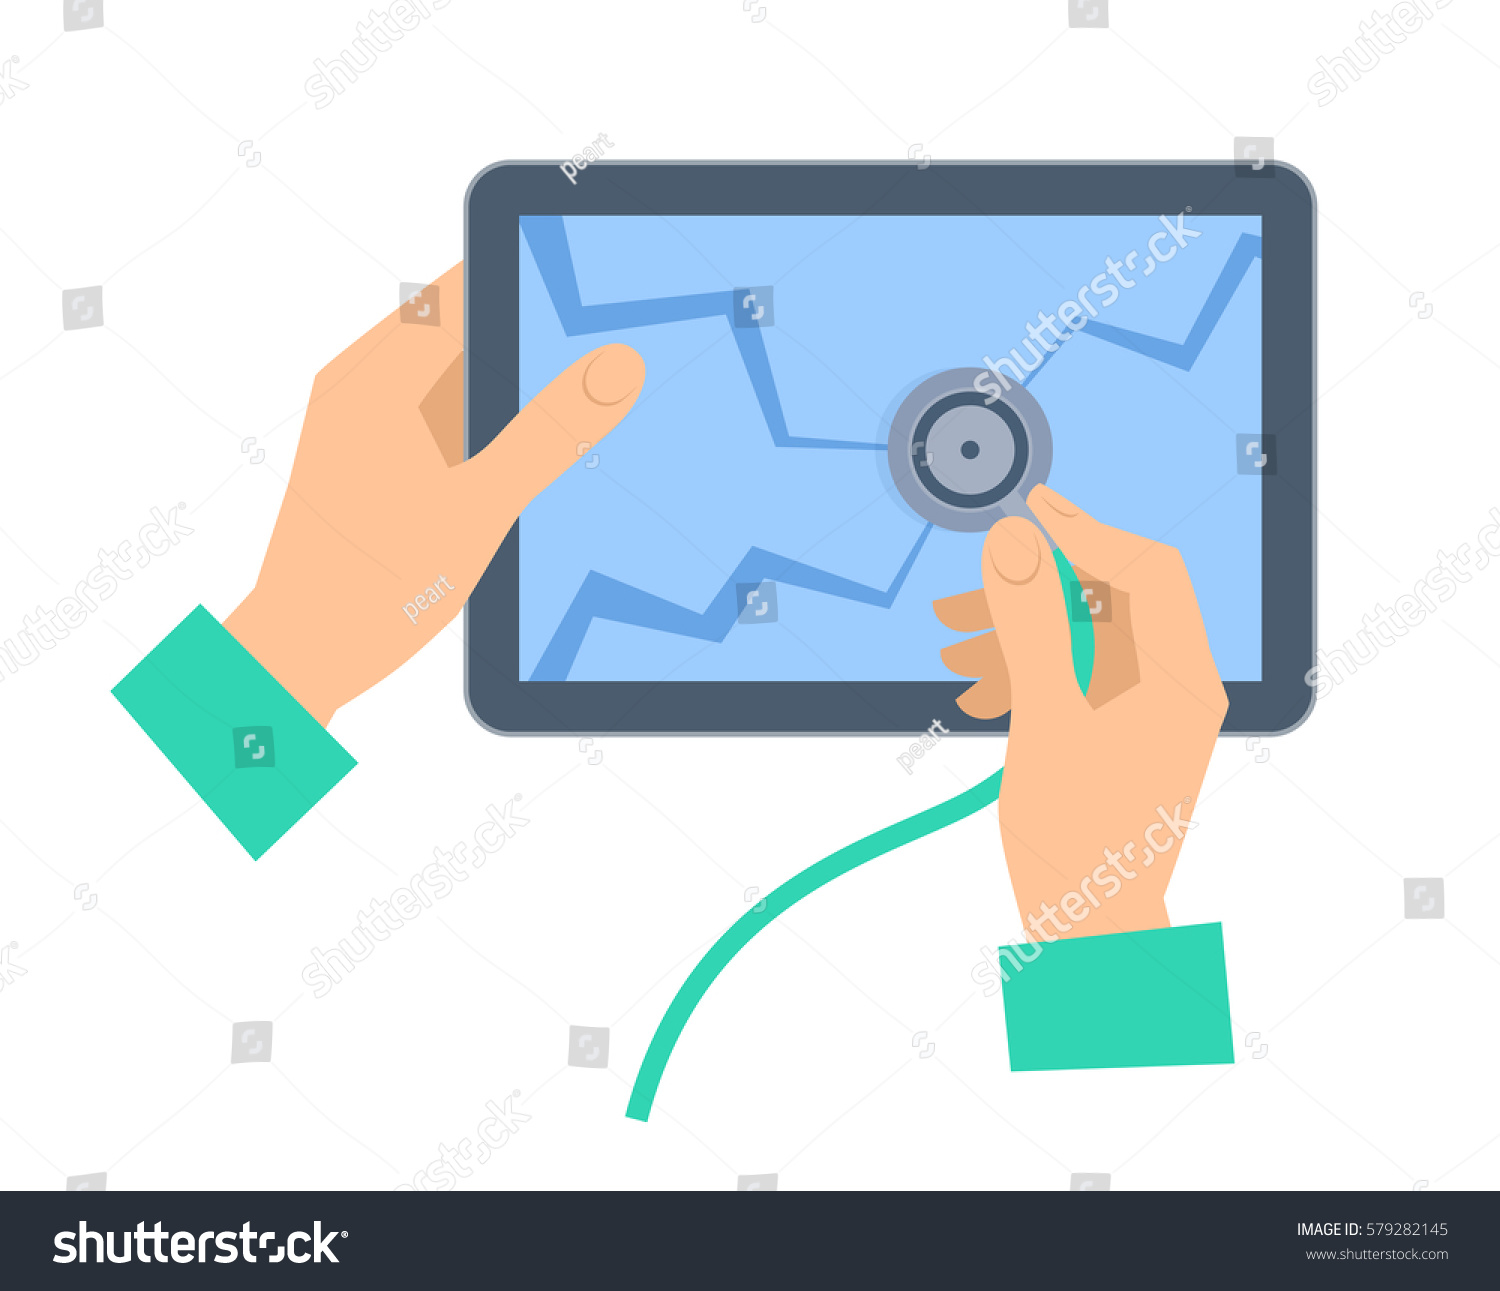 hand stethoscope examing broken tablet pc stock vector (royalty freethe hand with stethoscope examing broken tablet pc recovery, repair flat concept illustration